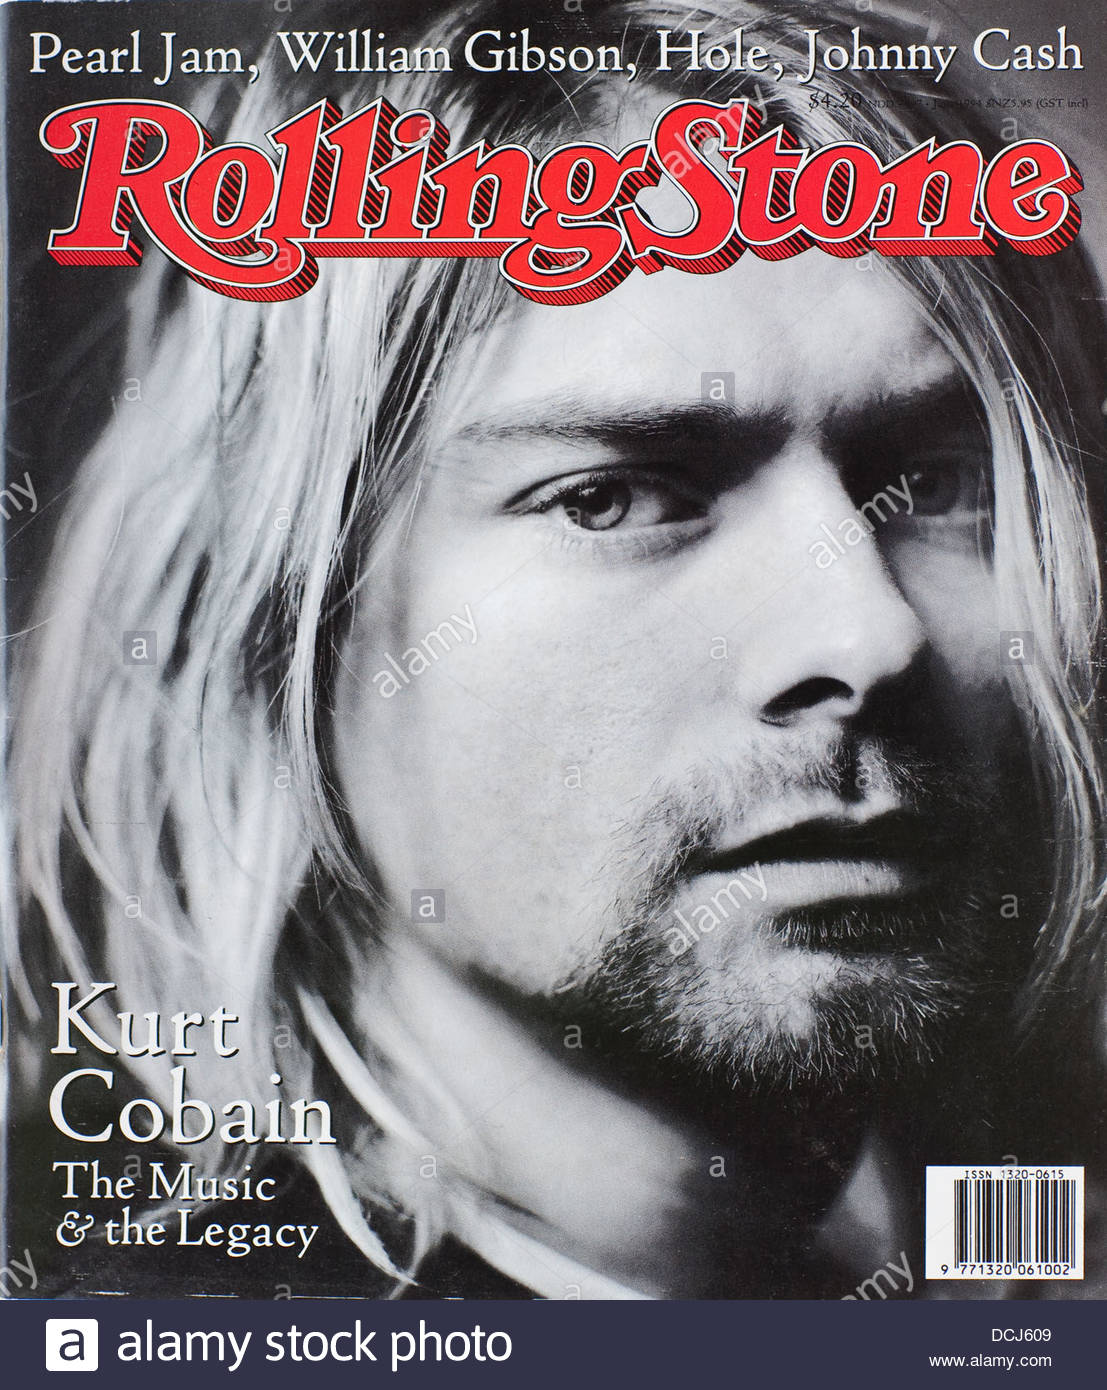 Watch Rolling stone magazine video